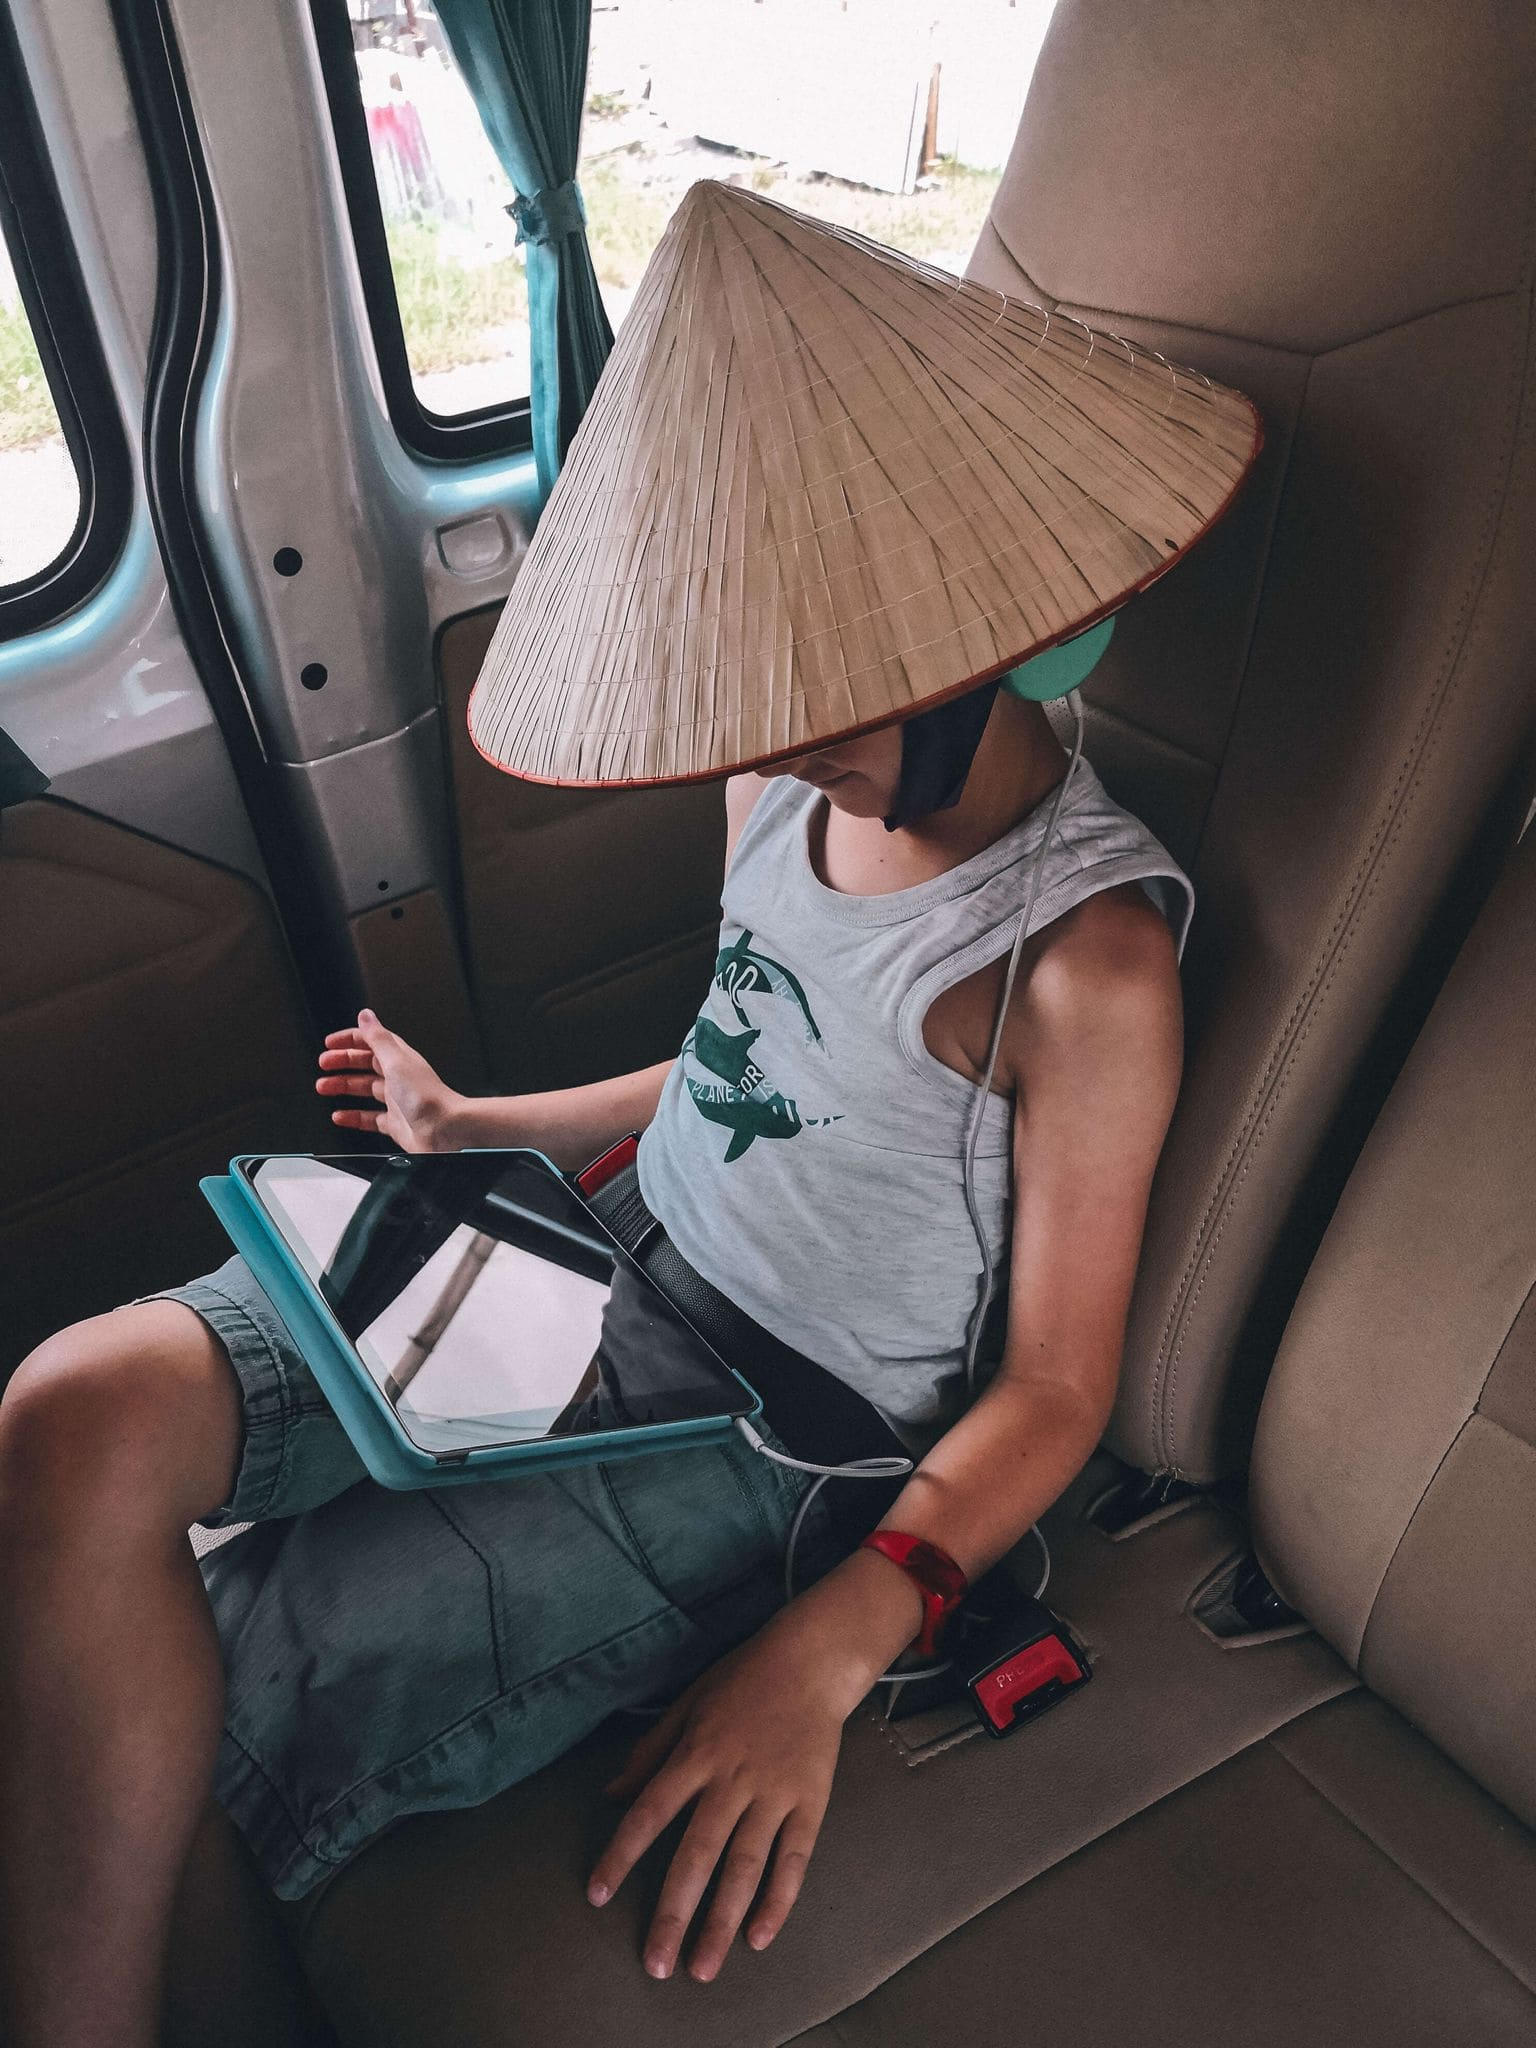 Child wearing traditional vietnamese conical hat whilst on his tablet